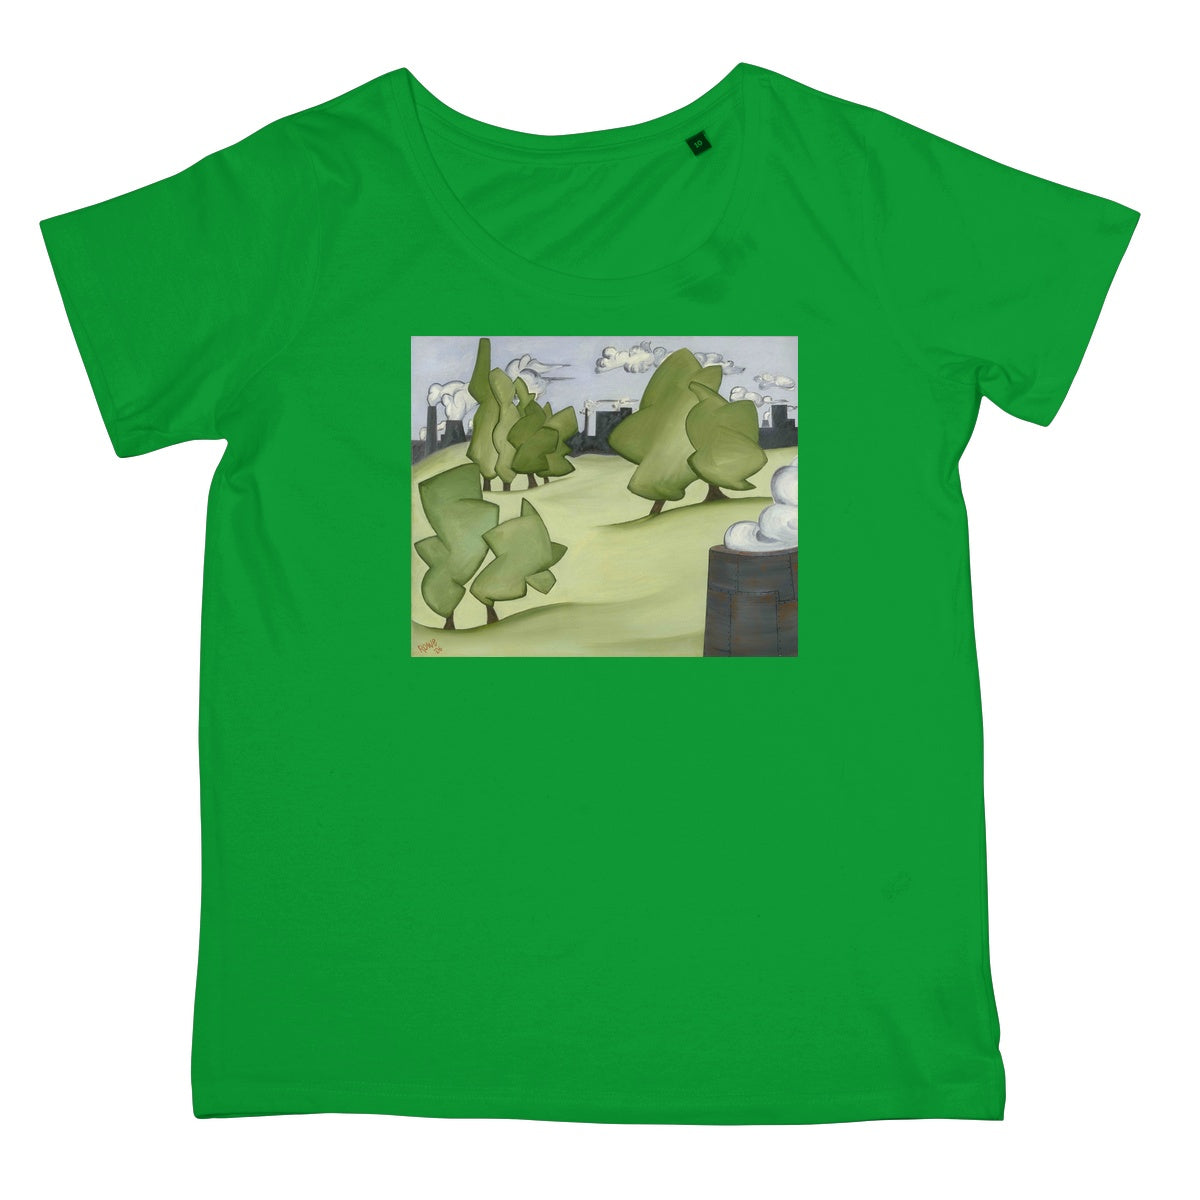 The Park Women's Retail T-Shirt